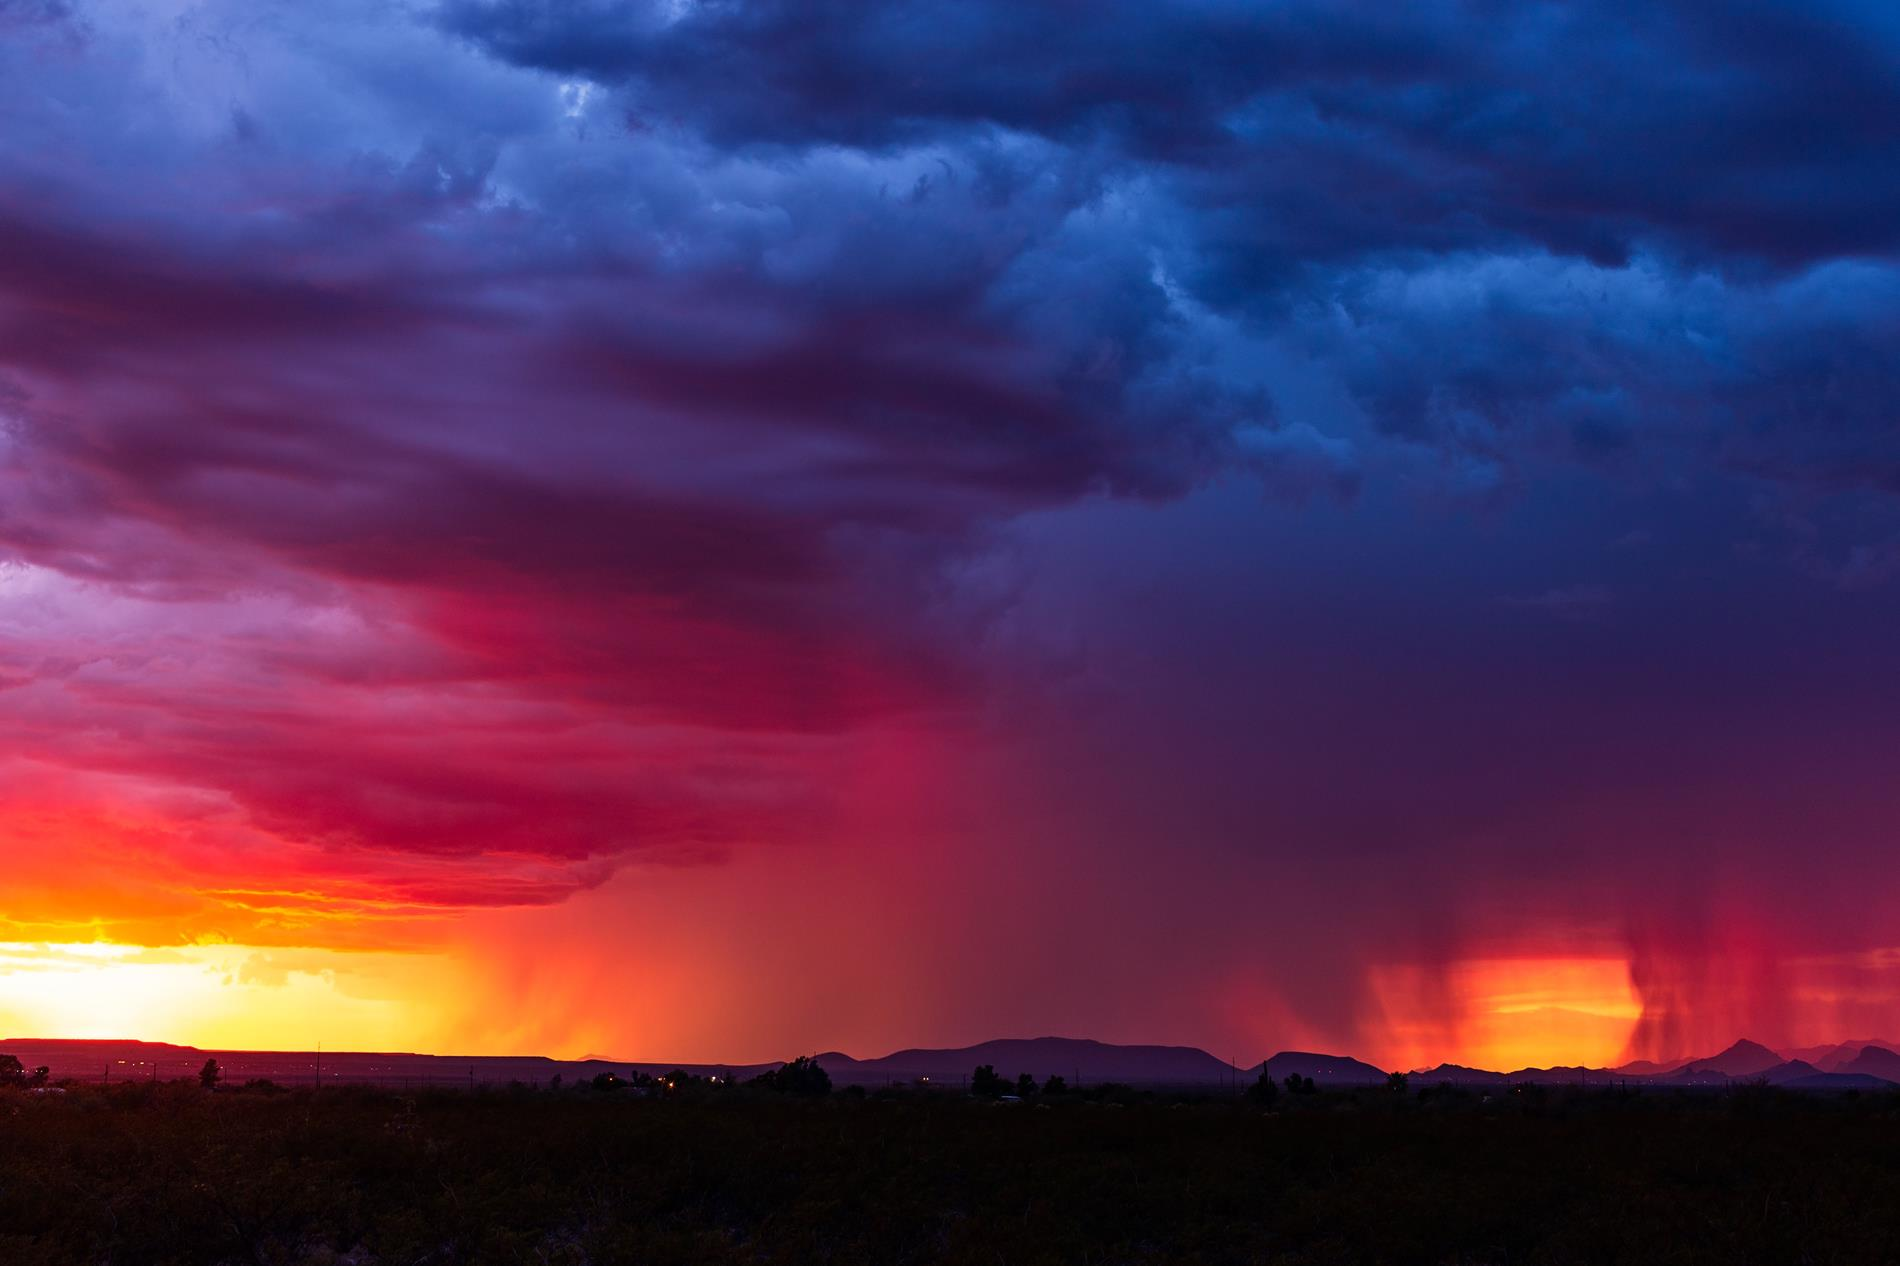 desert rainstorym at sunset